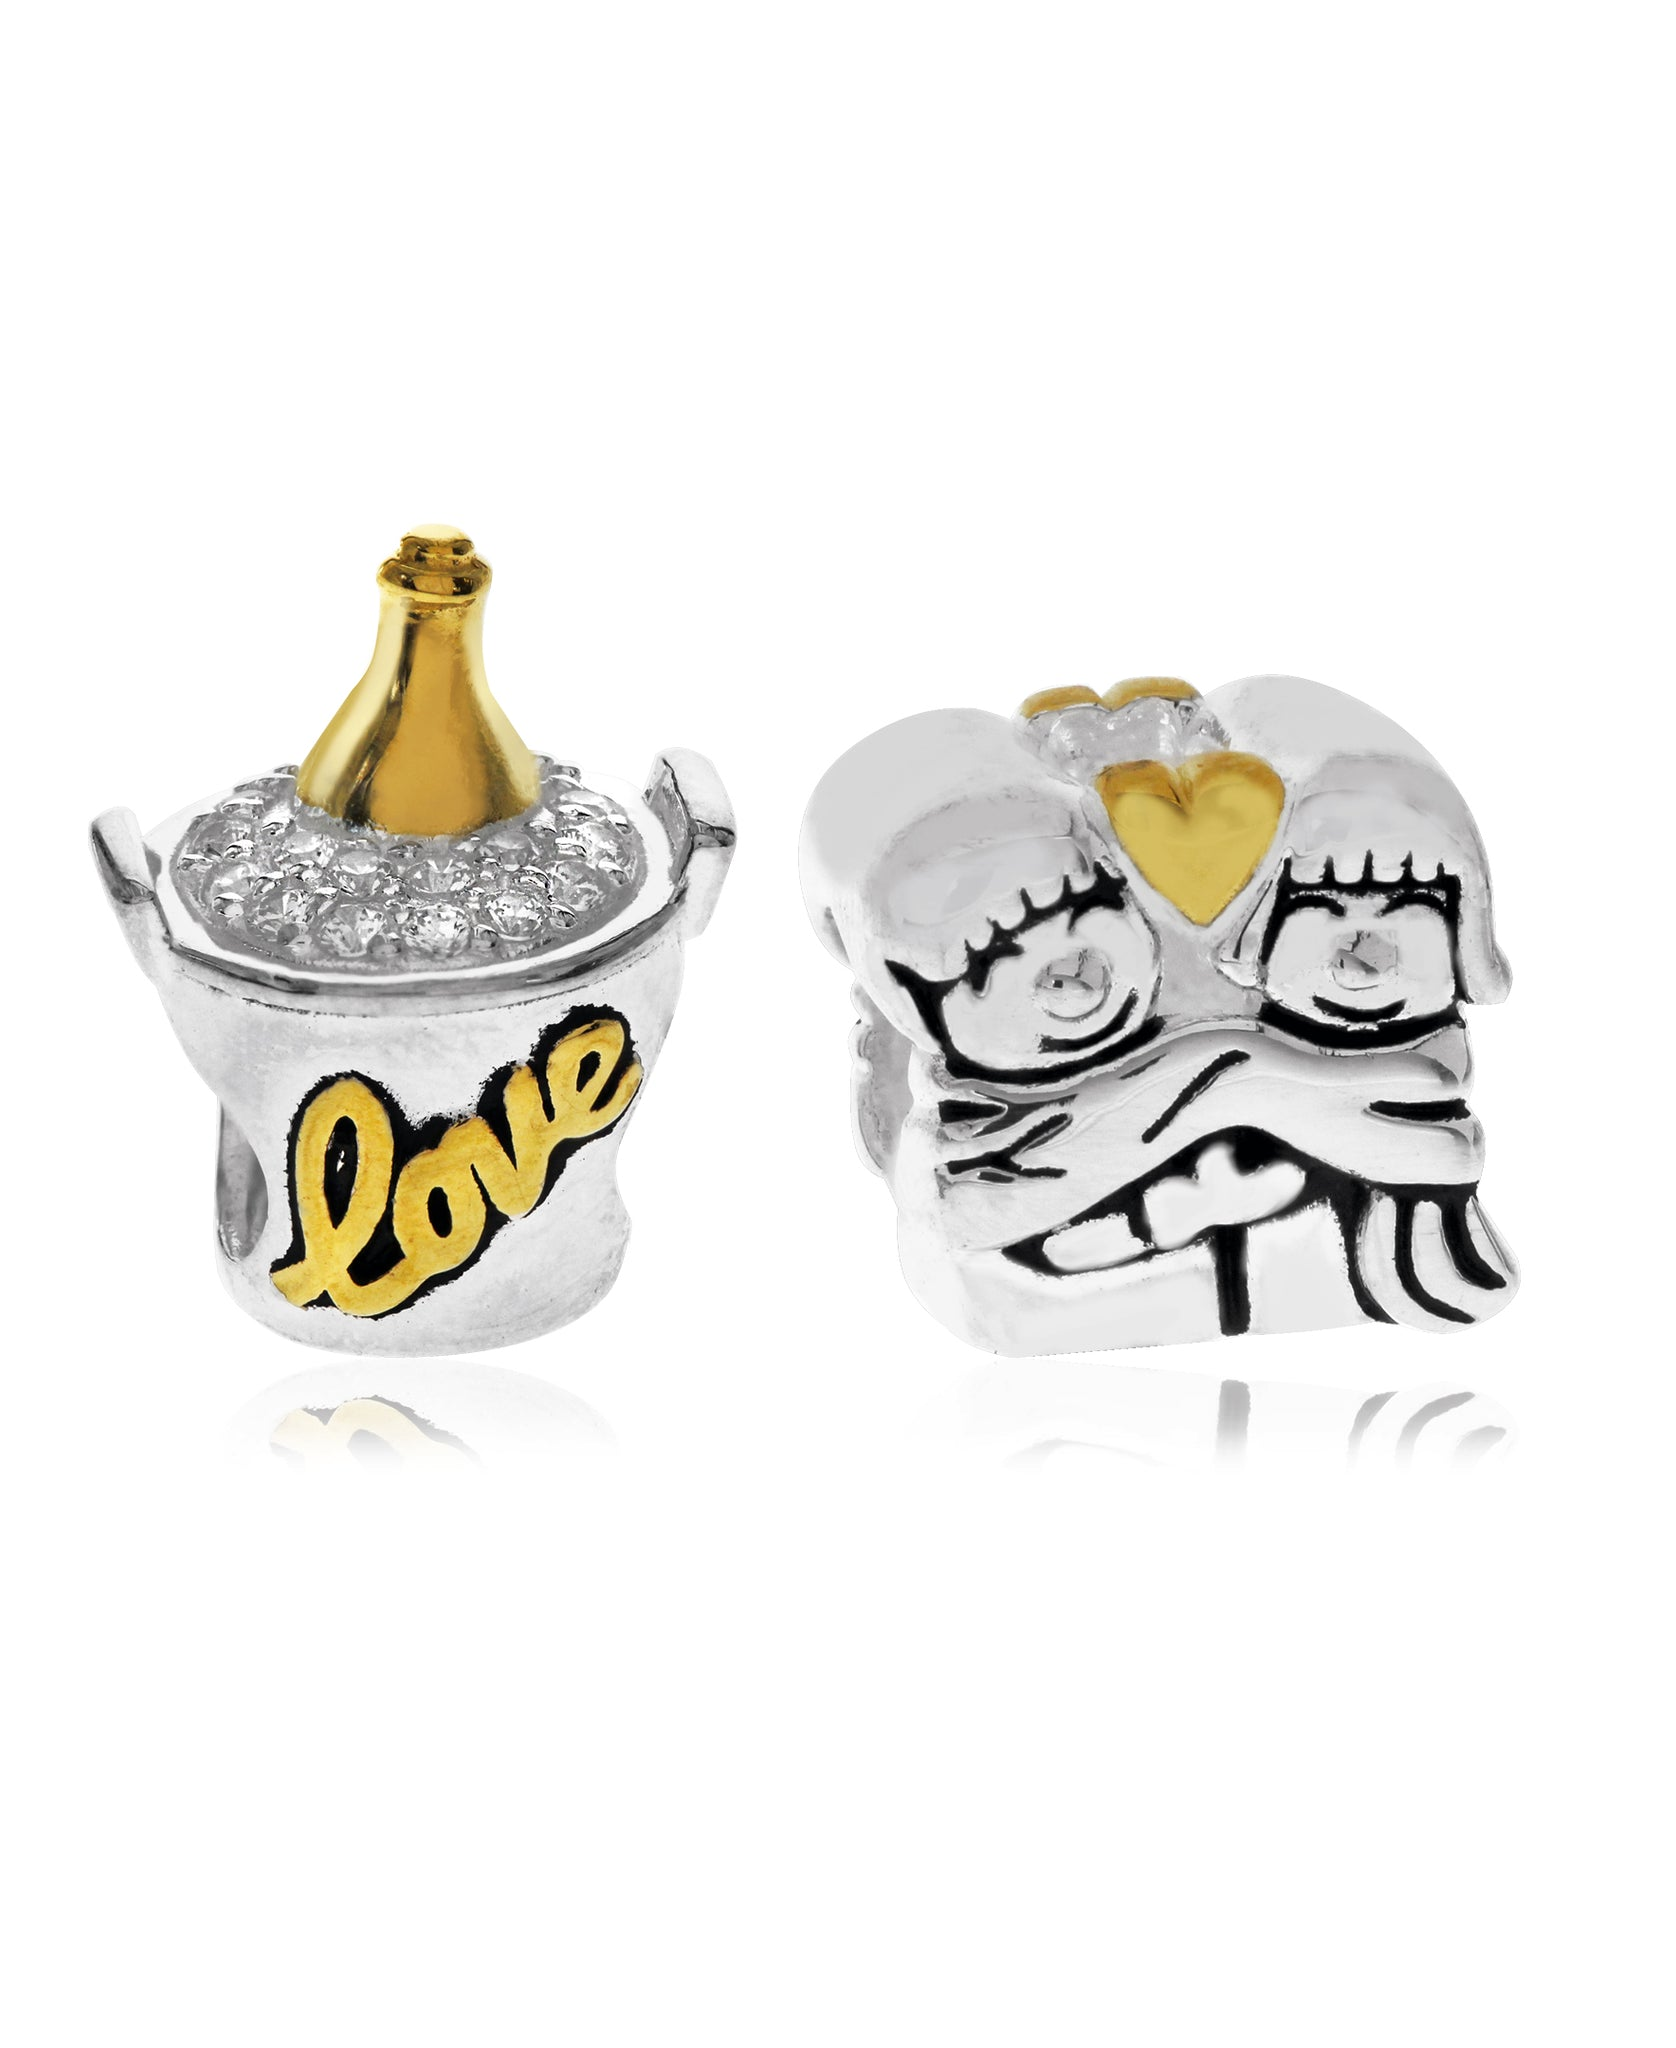 Two-Tone 2-Pc. Set Cubic Zirconia Champagne and Lovers Bead Charms in Sterling Silver (2 colors) - Rhona Sutton Jewellery